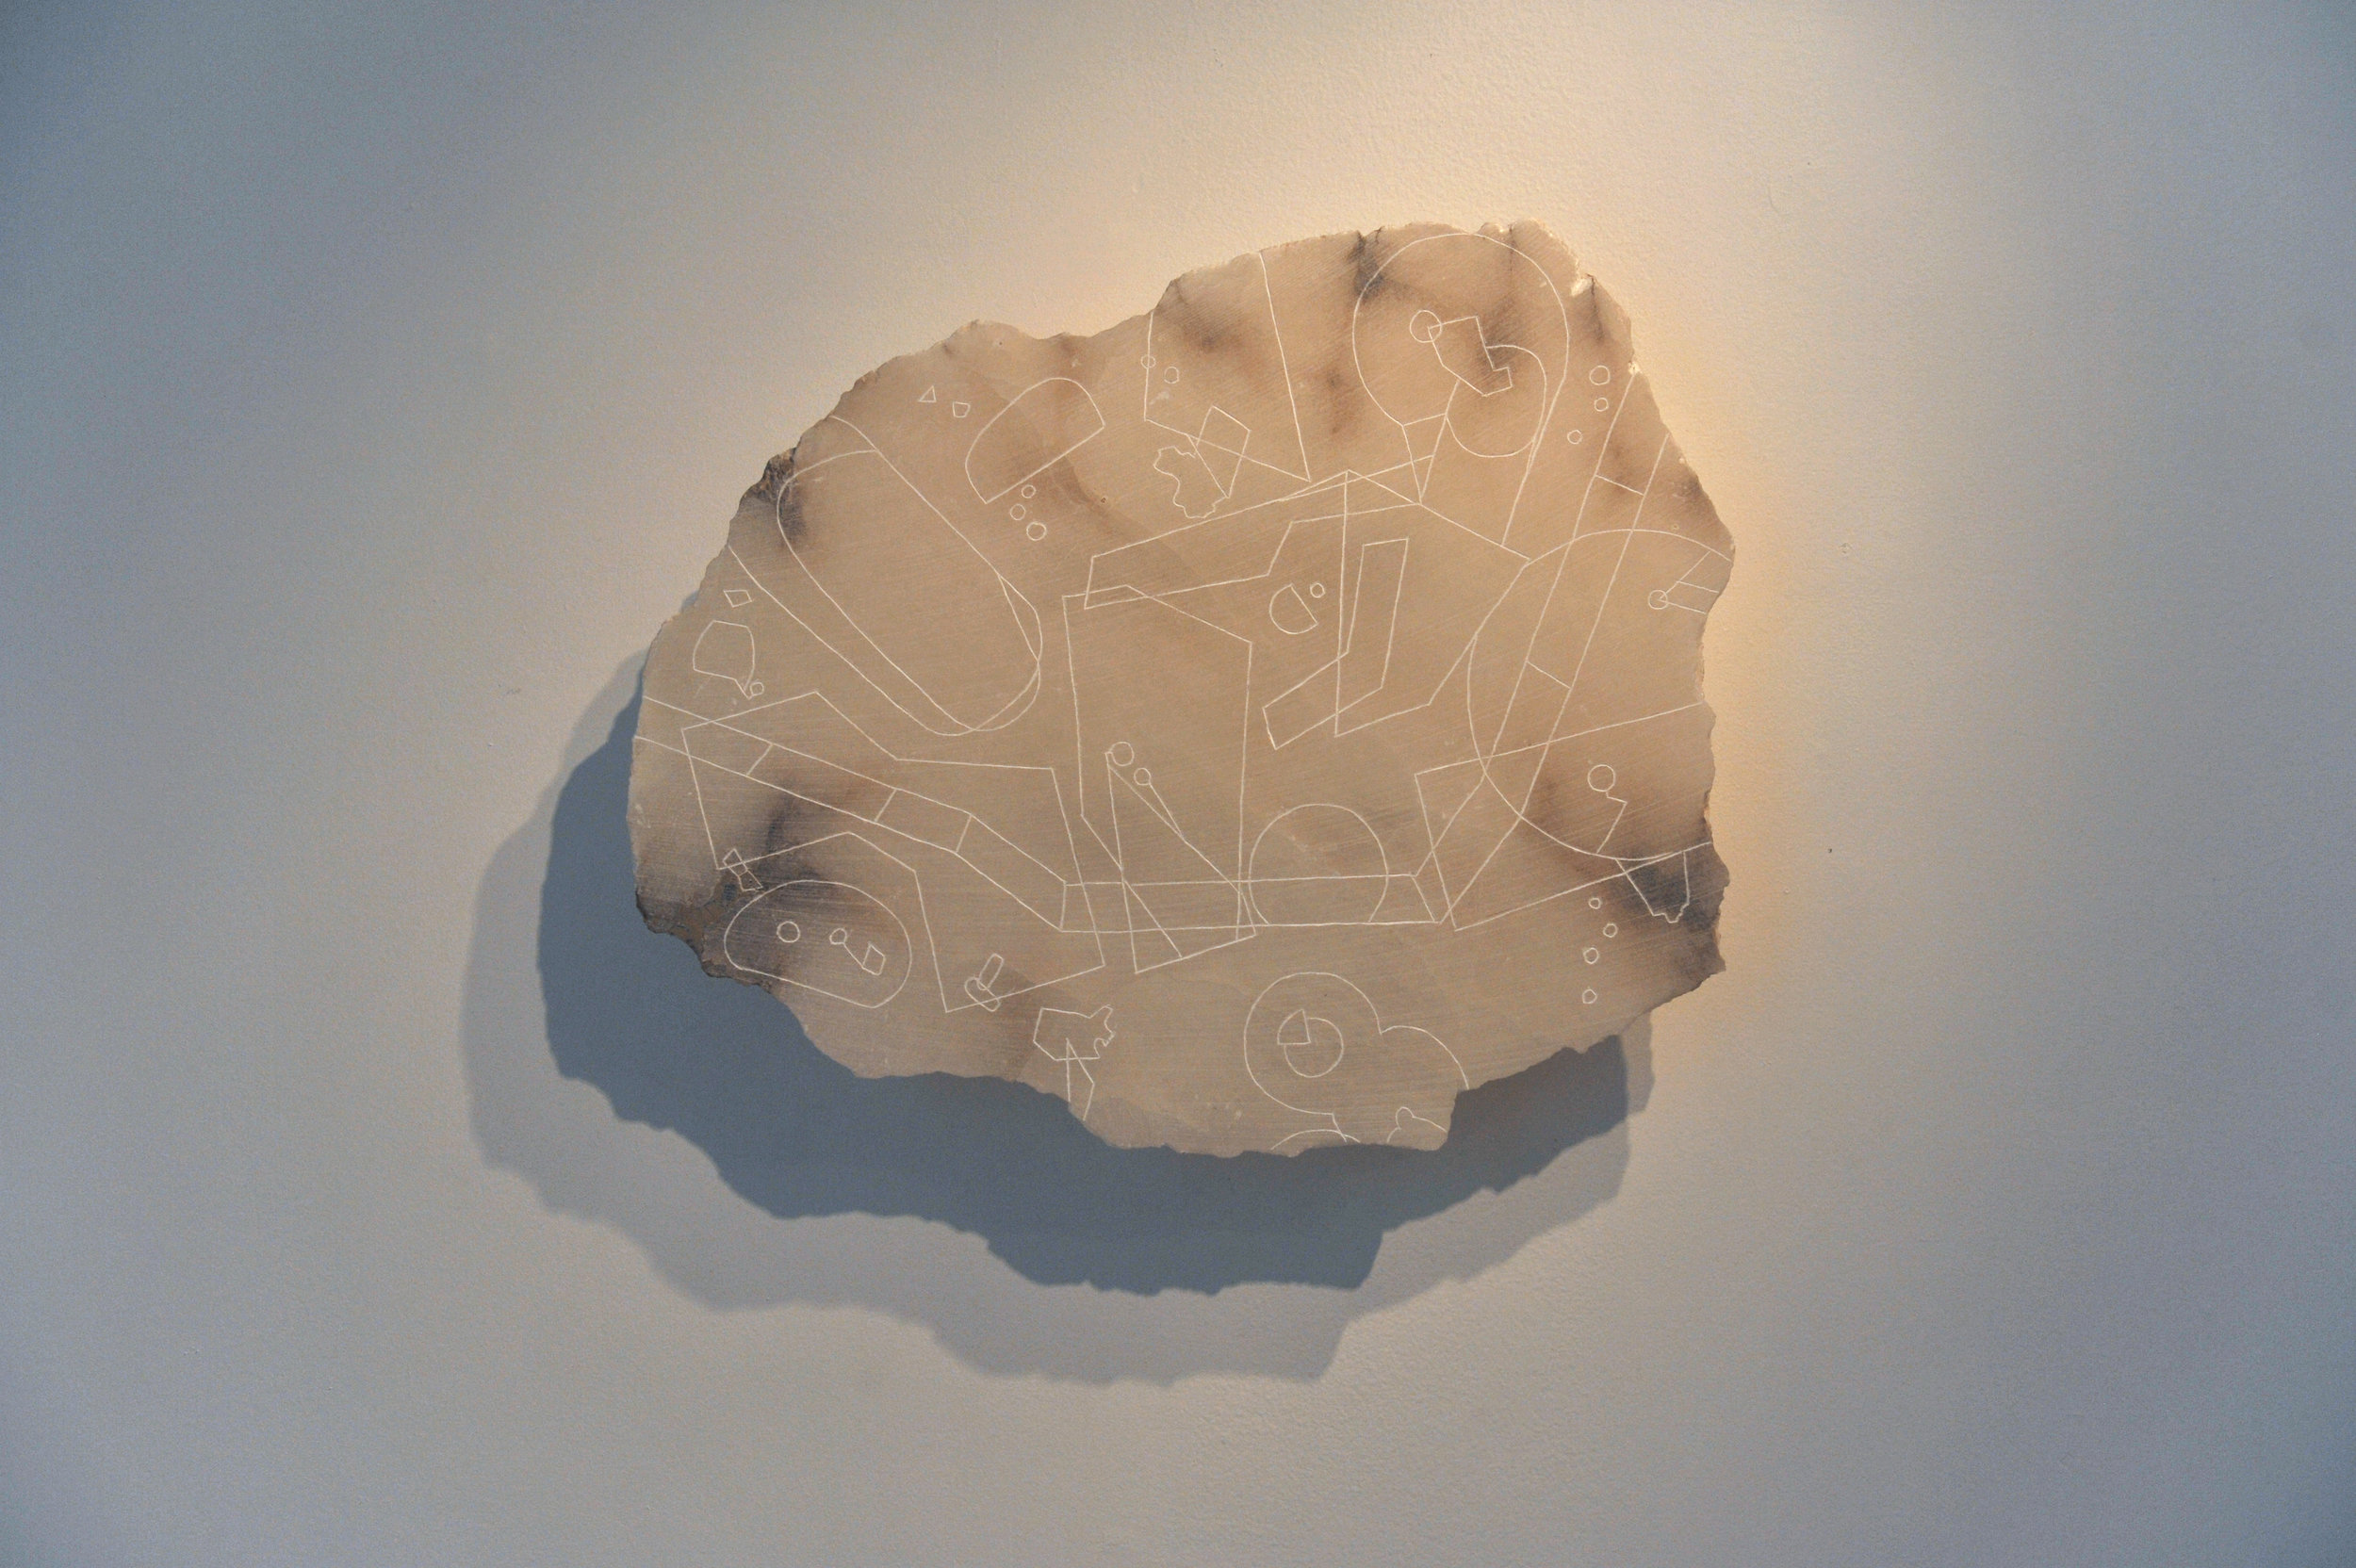 Low Flying Chart #7   (2013), military flying chart of the Mediterranean on carved alabaster stone